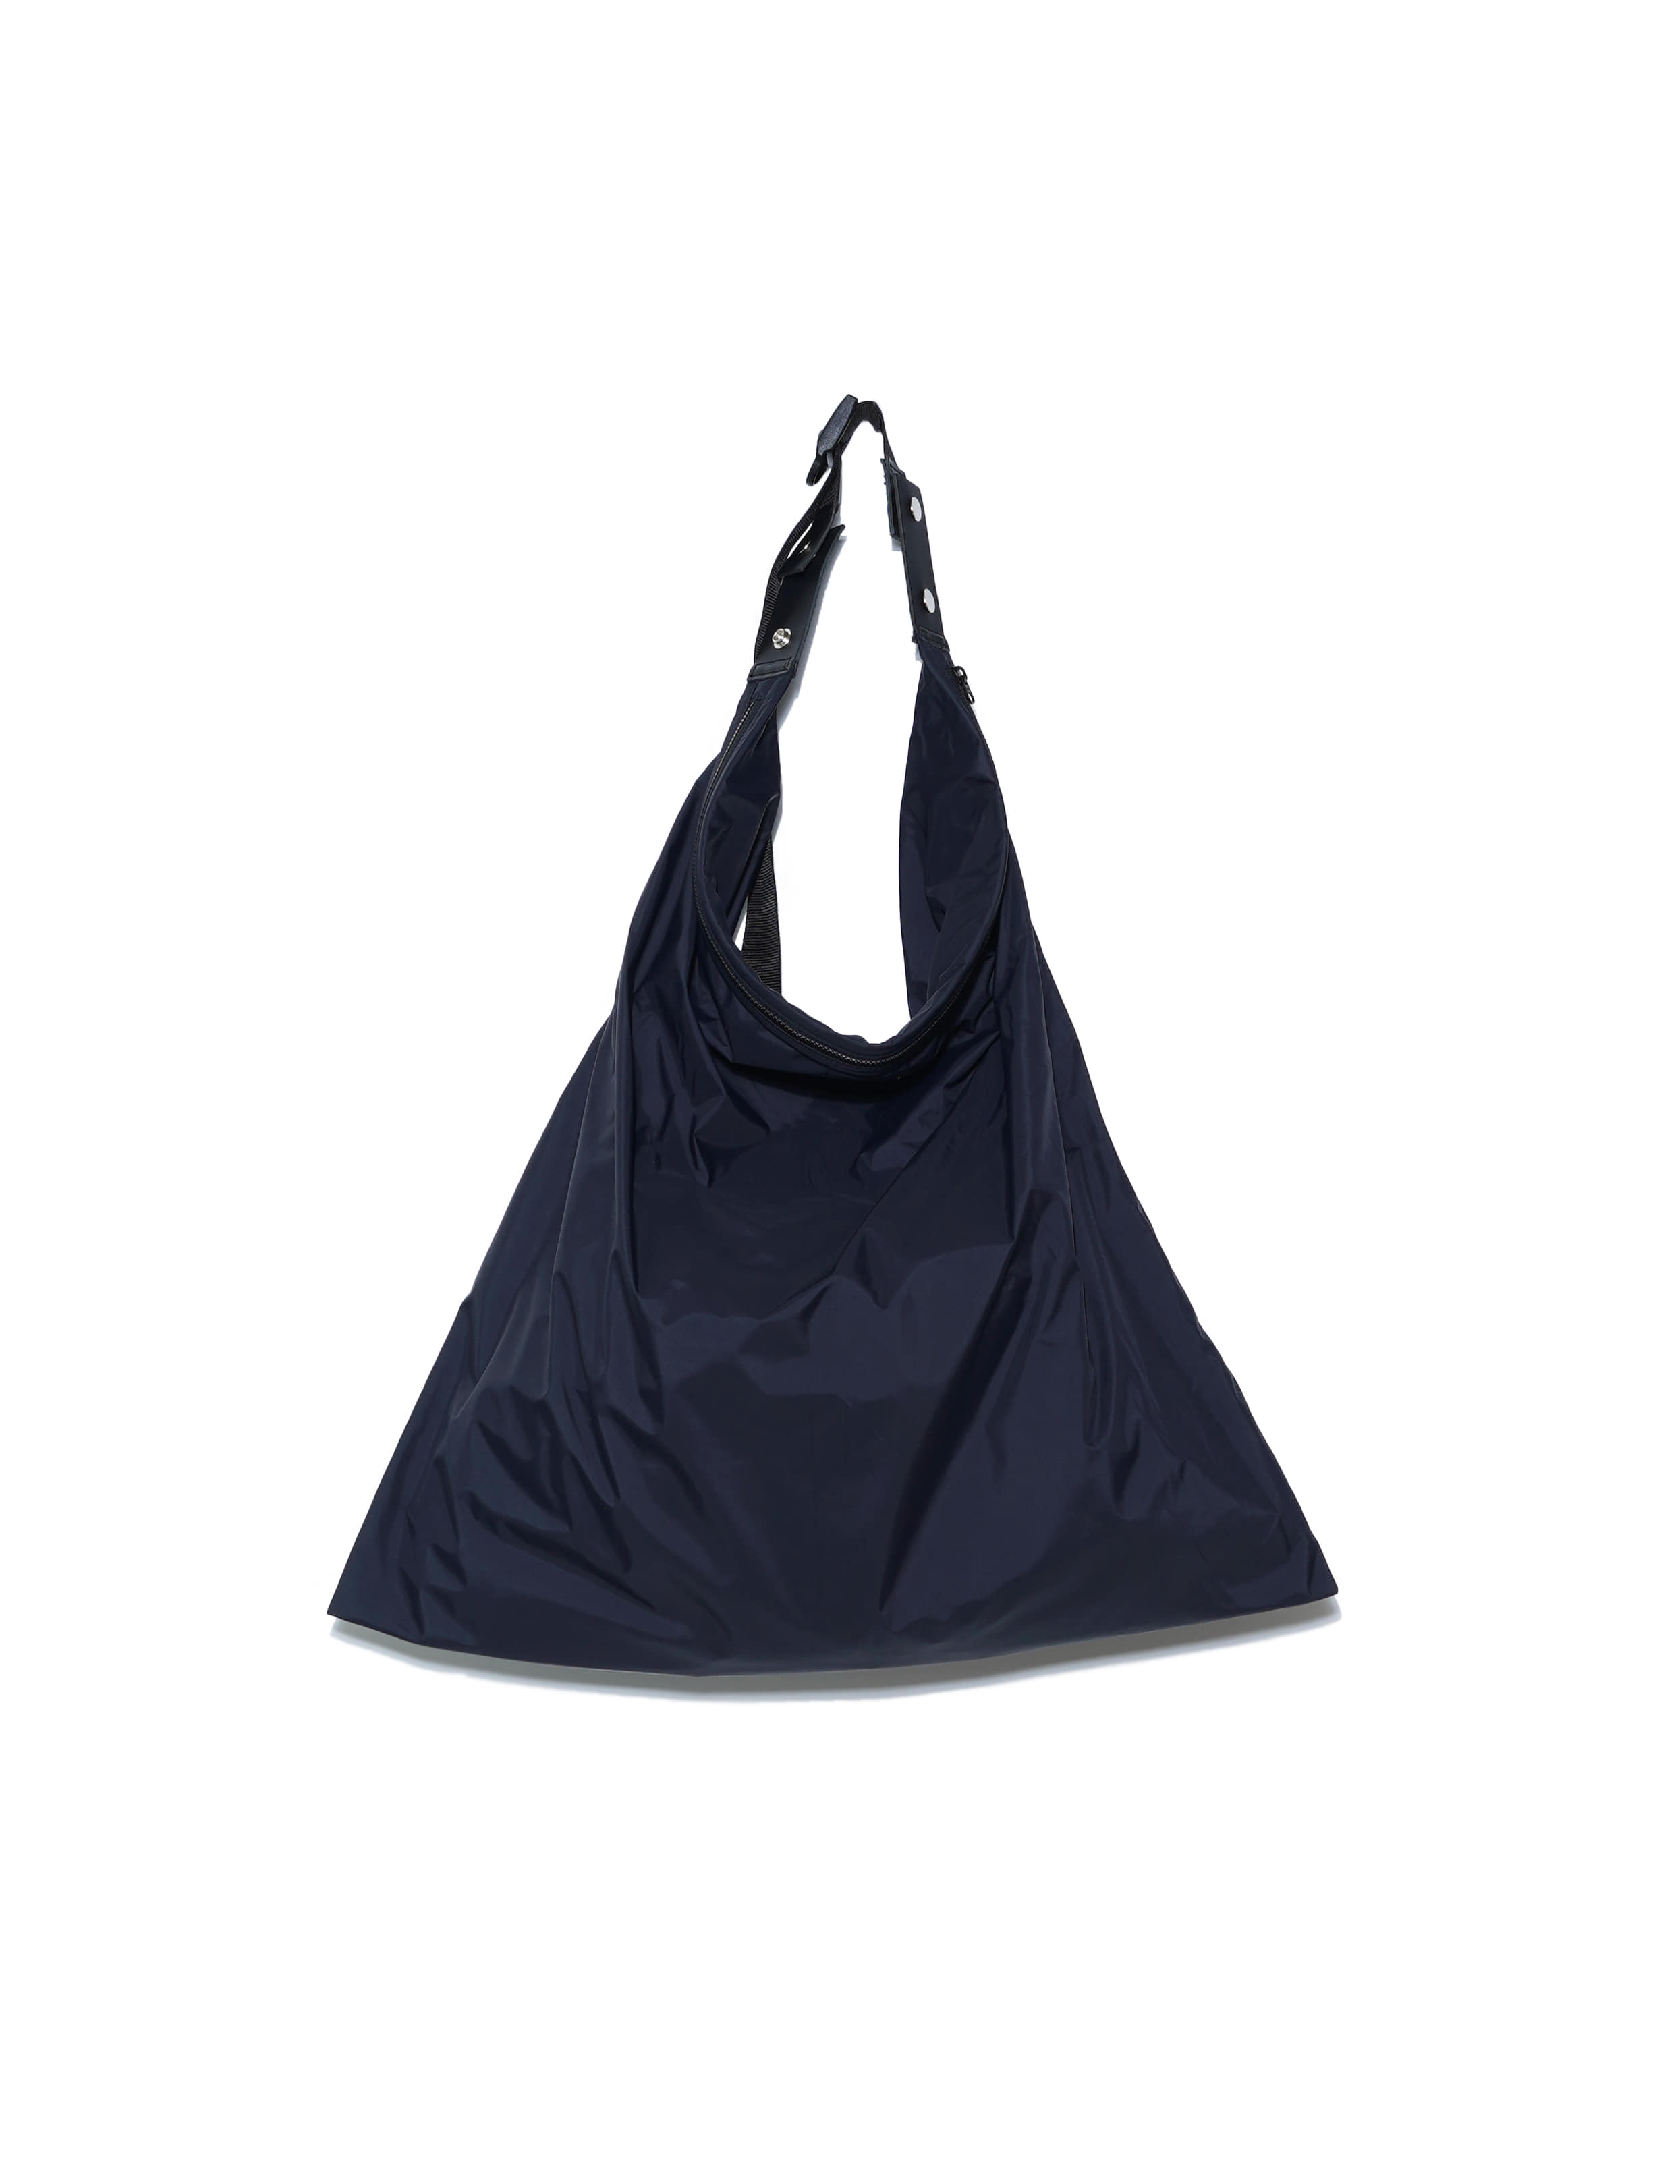 WRAP BAG - M (BLACK)